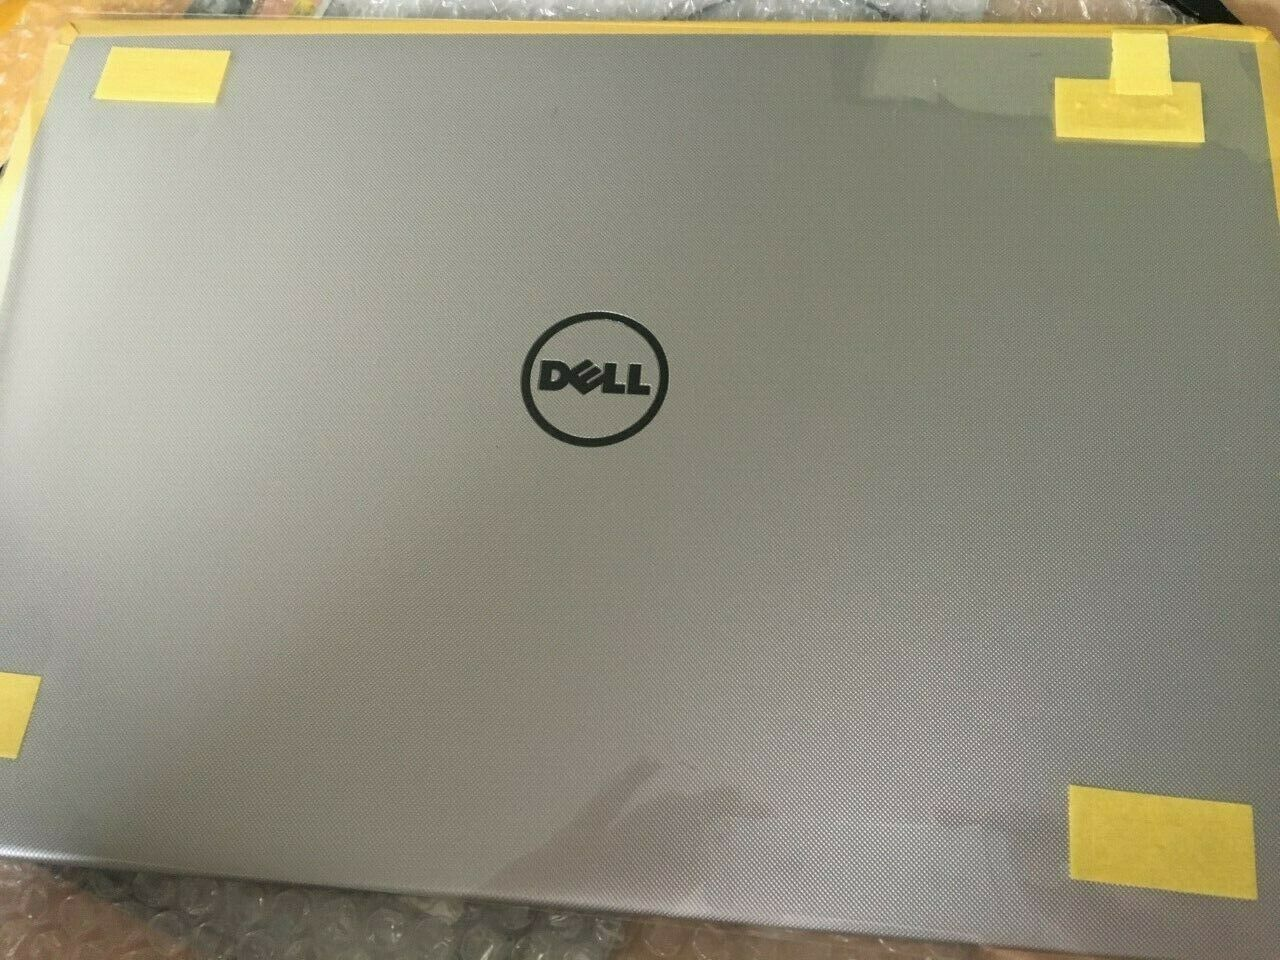 CN-07NNP1 For Dell Inspiron 15 5000 5555 5558 5559 Laptop LCD Back Cover